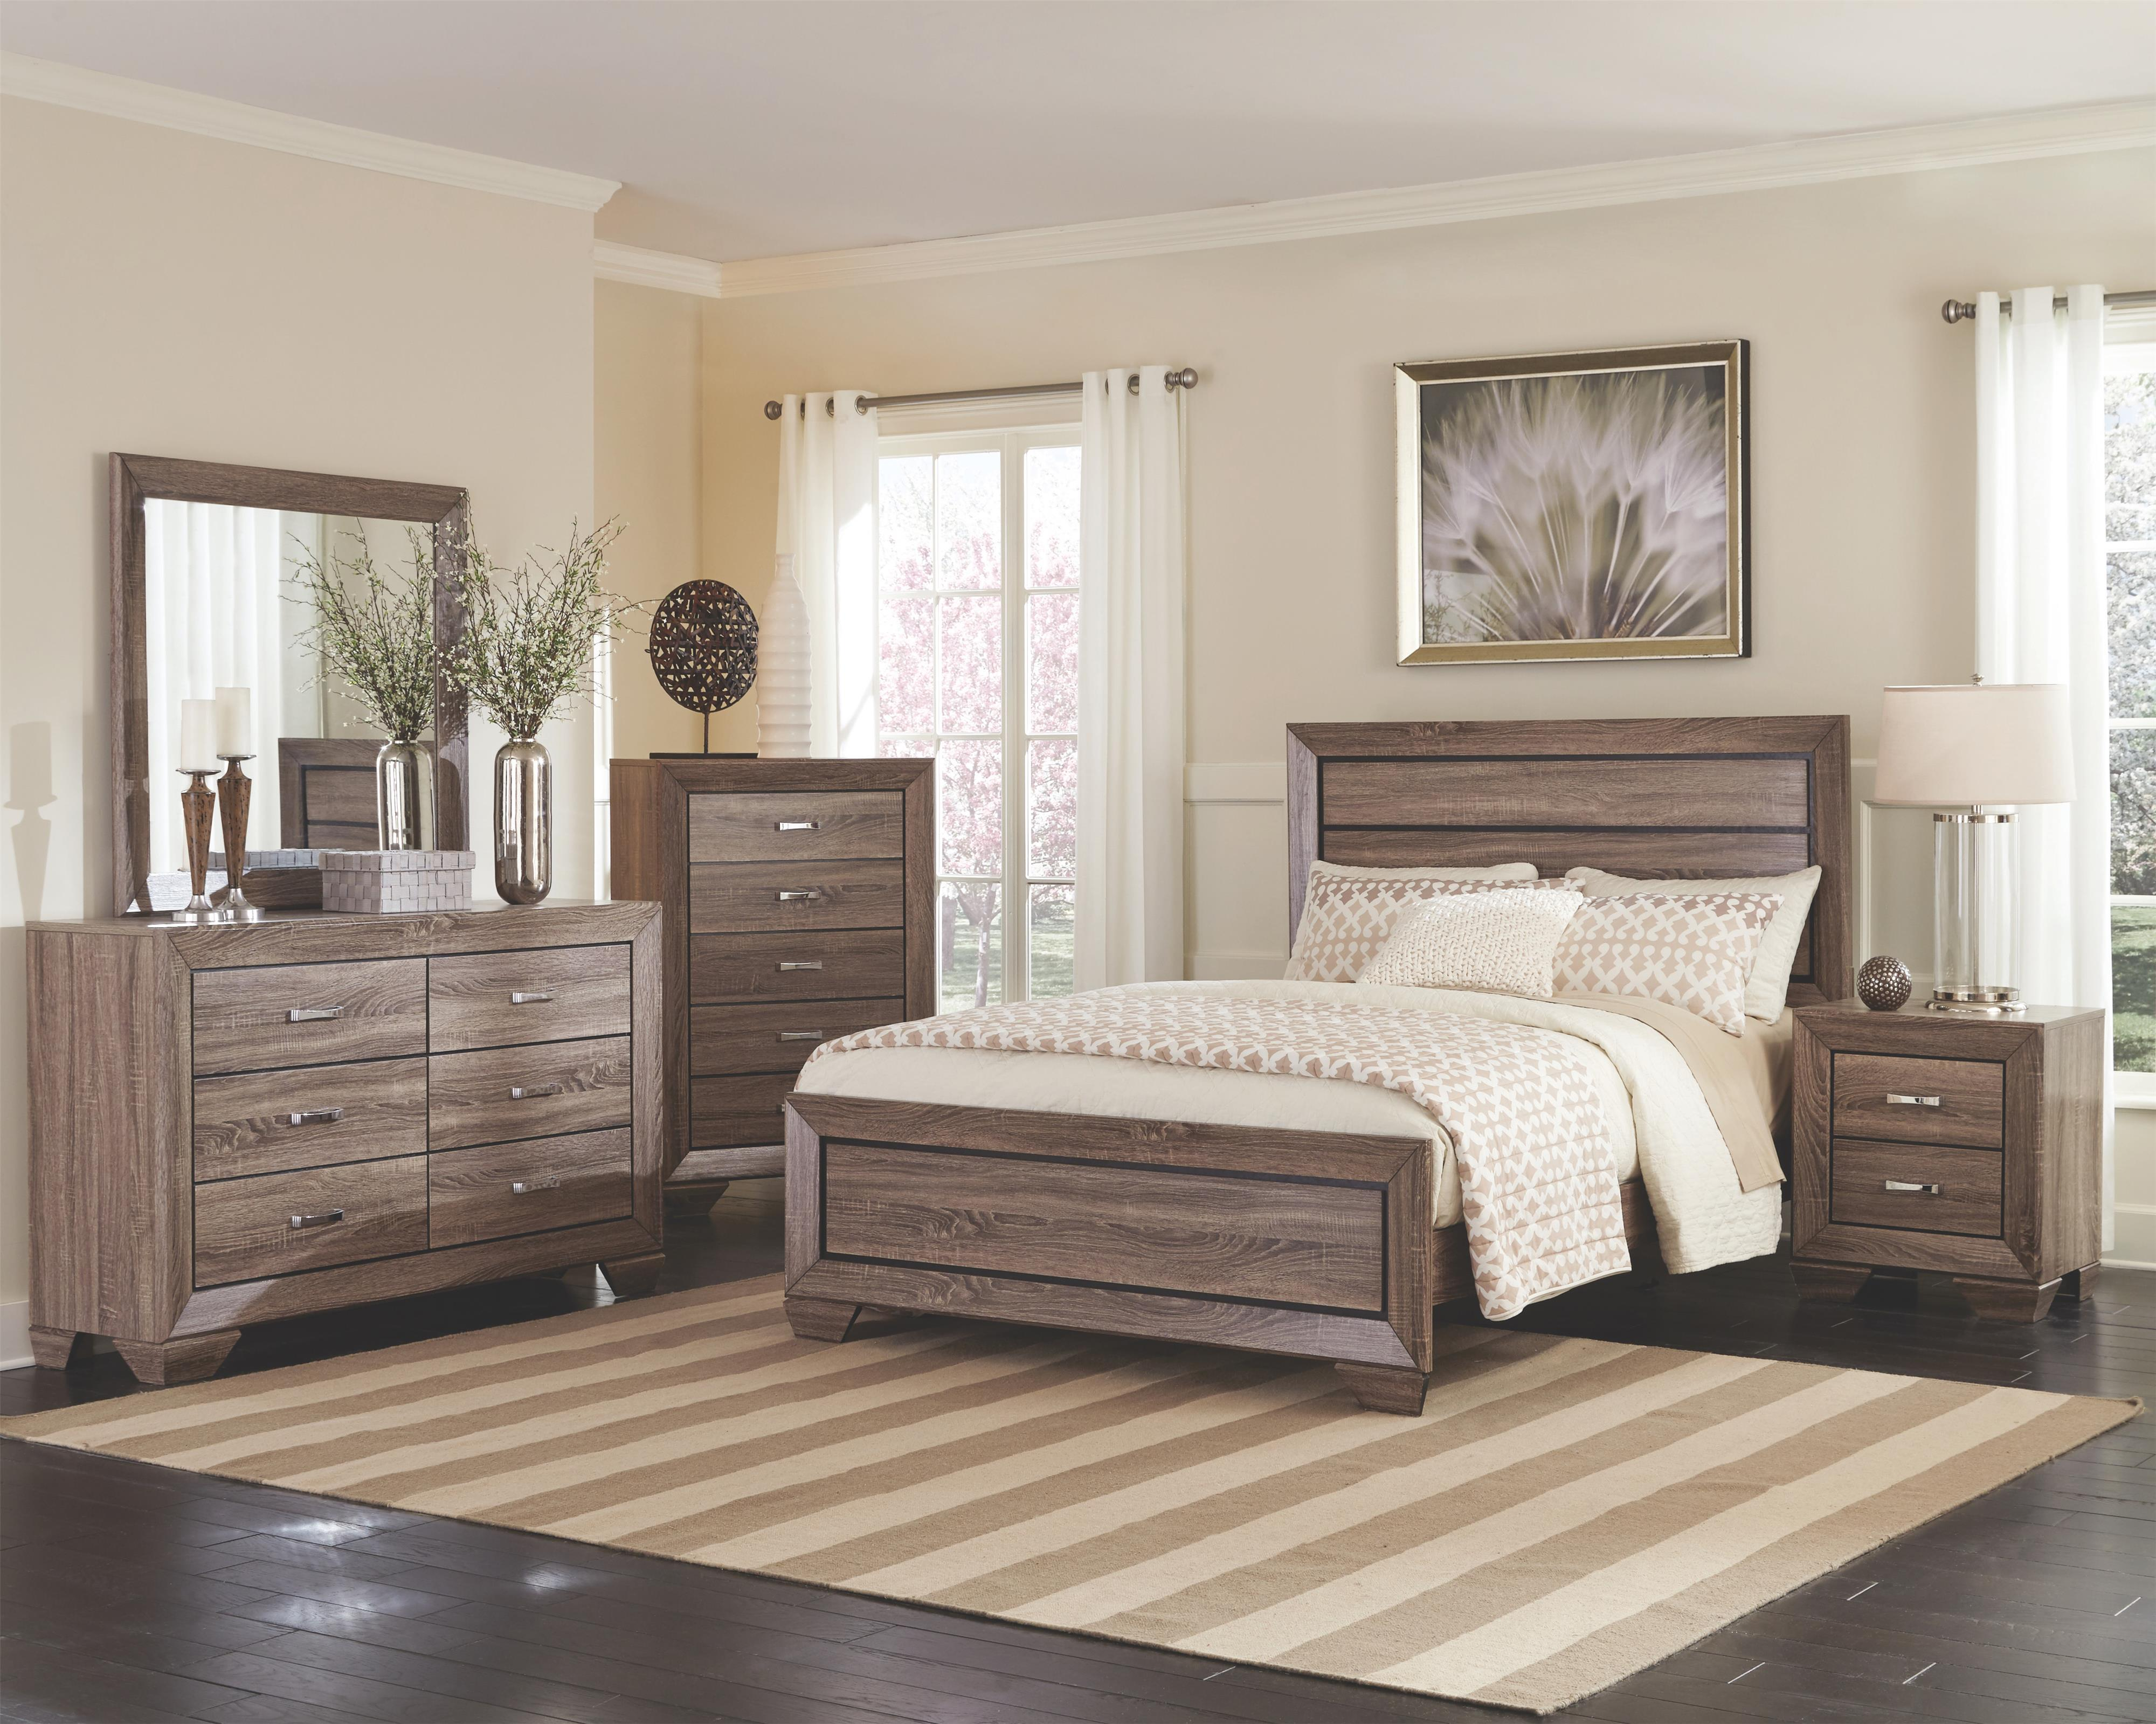 Coaster Kauffman Queen Bedroom Group - Item Number: Q20419BedroomGroup1